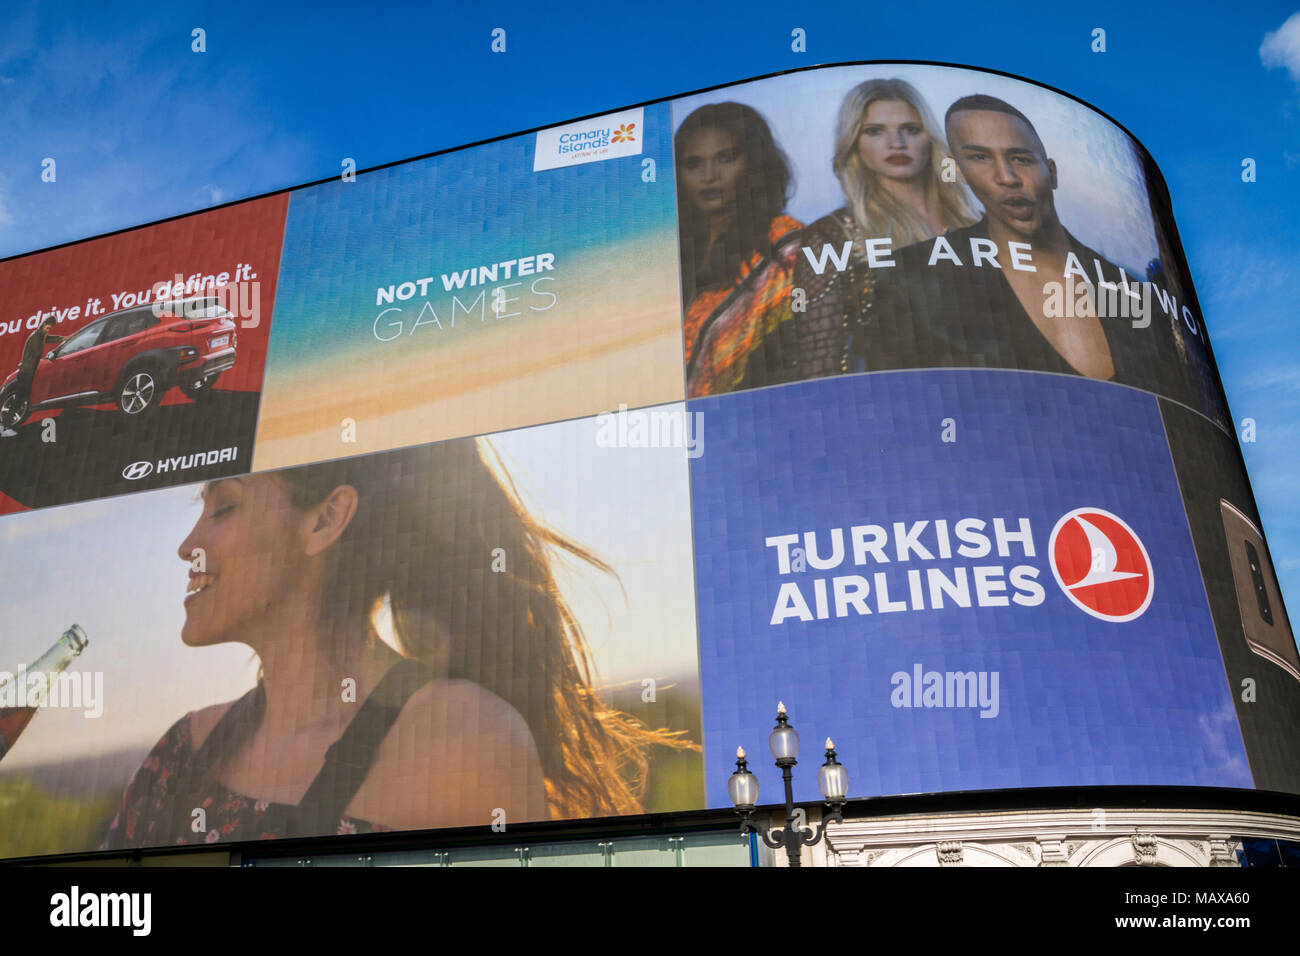 Piccadilly Circus Advertising Board, London UK - Stock Image